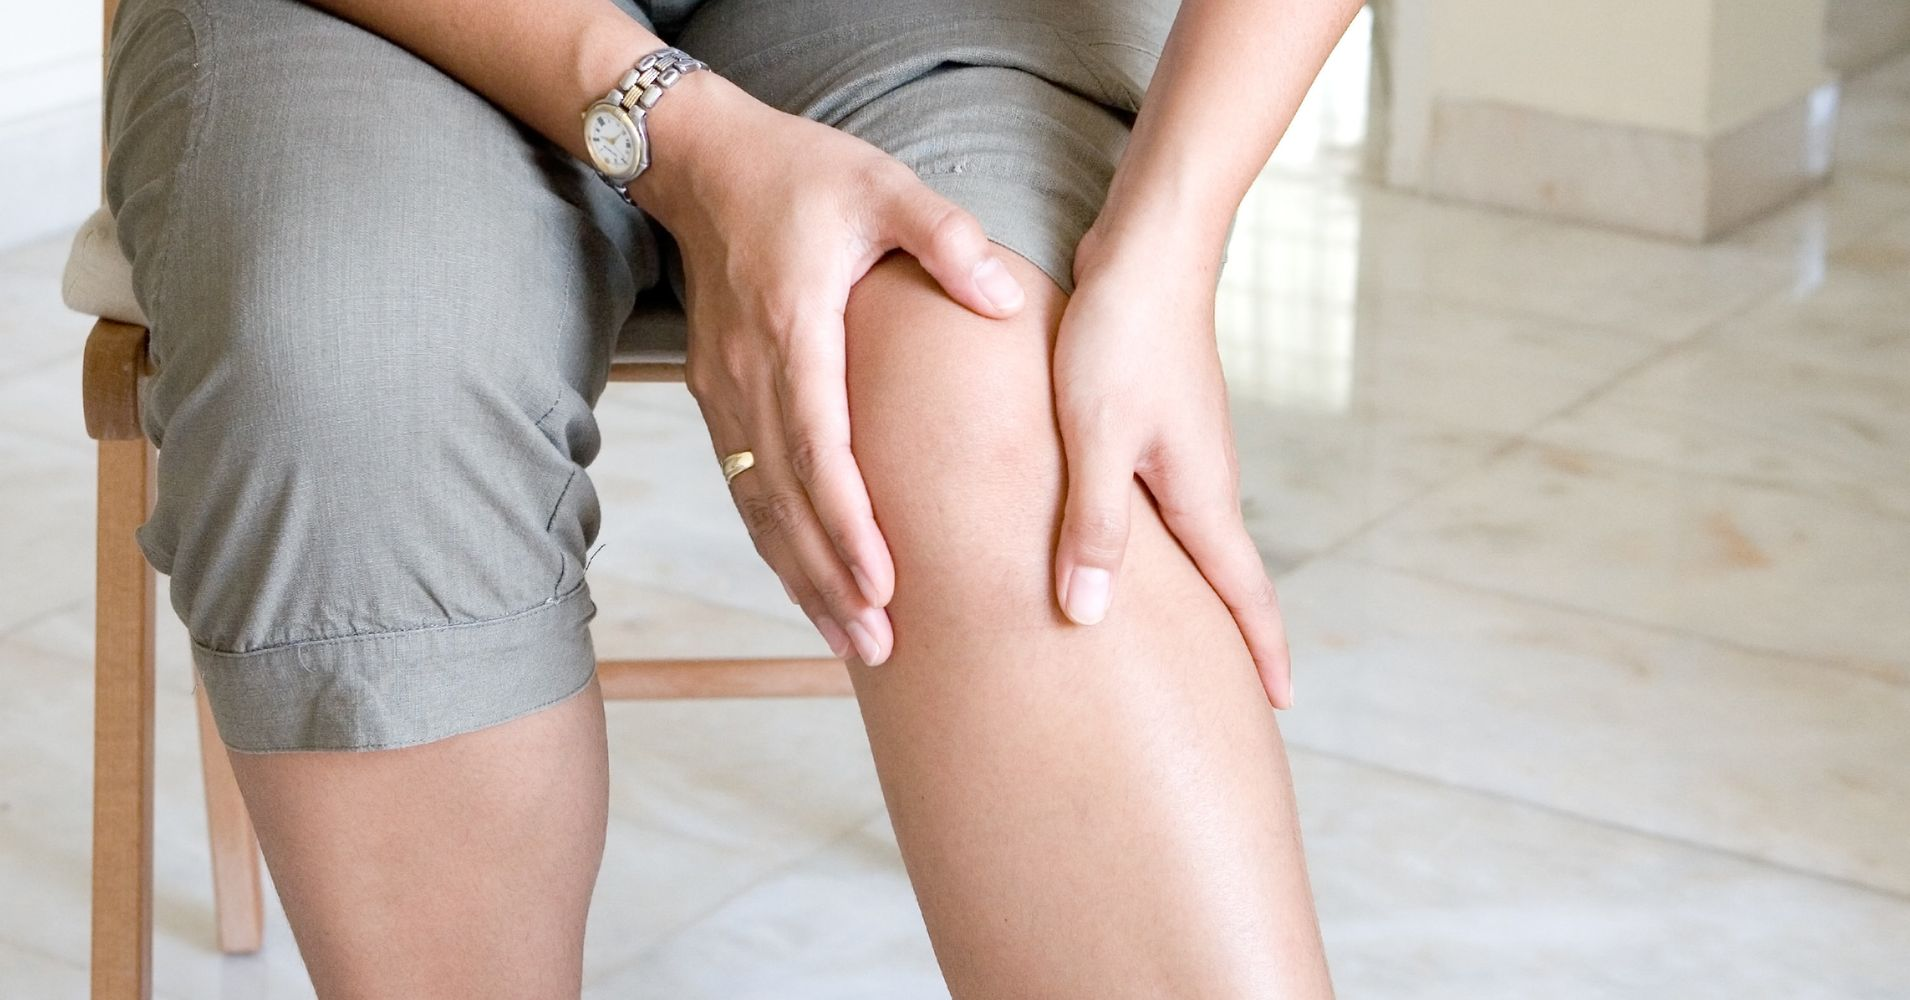 The 8 key ways to relieve knee pain that really work huffpost solutioingenieria Images